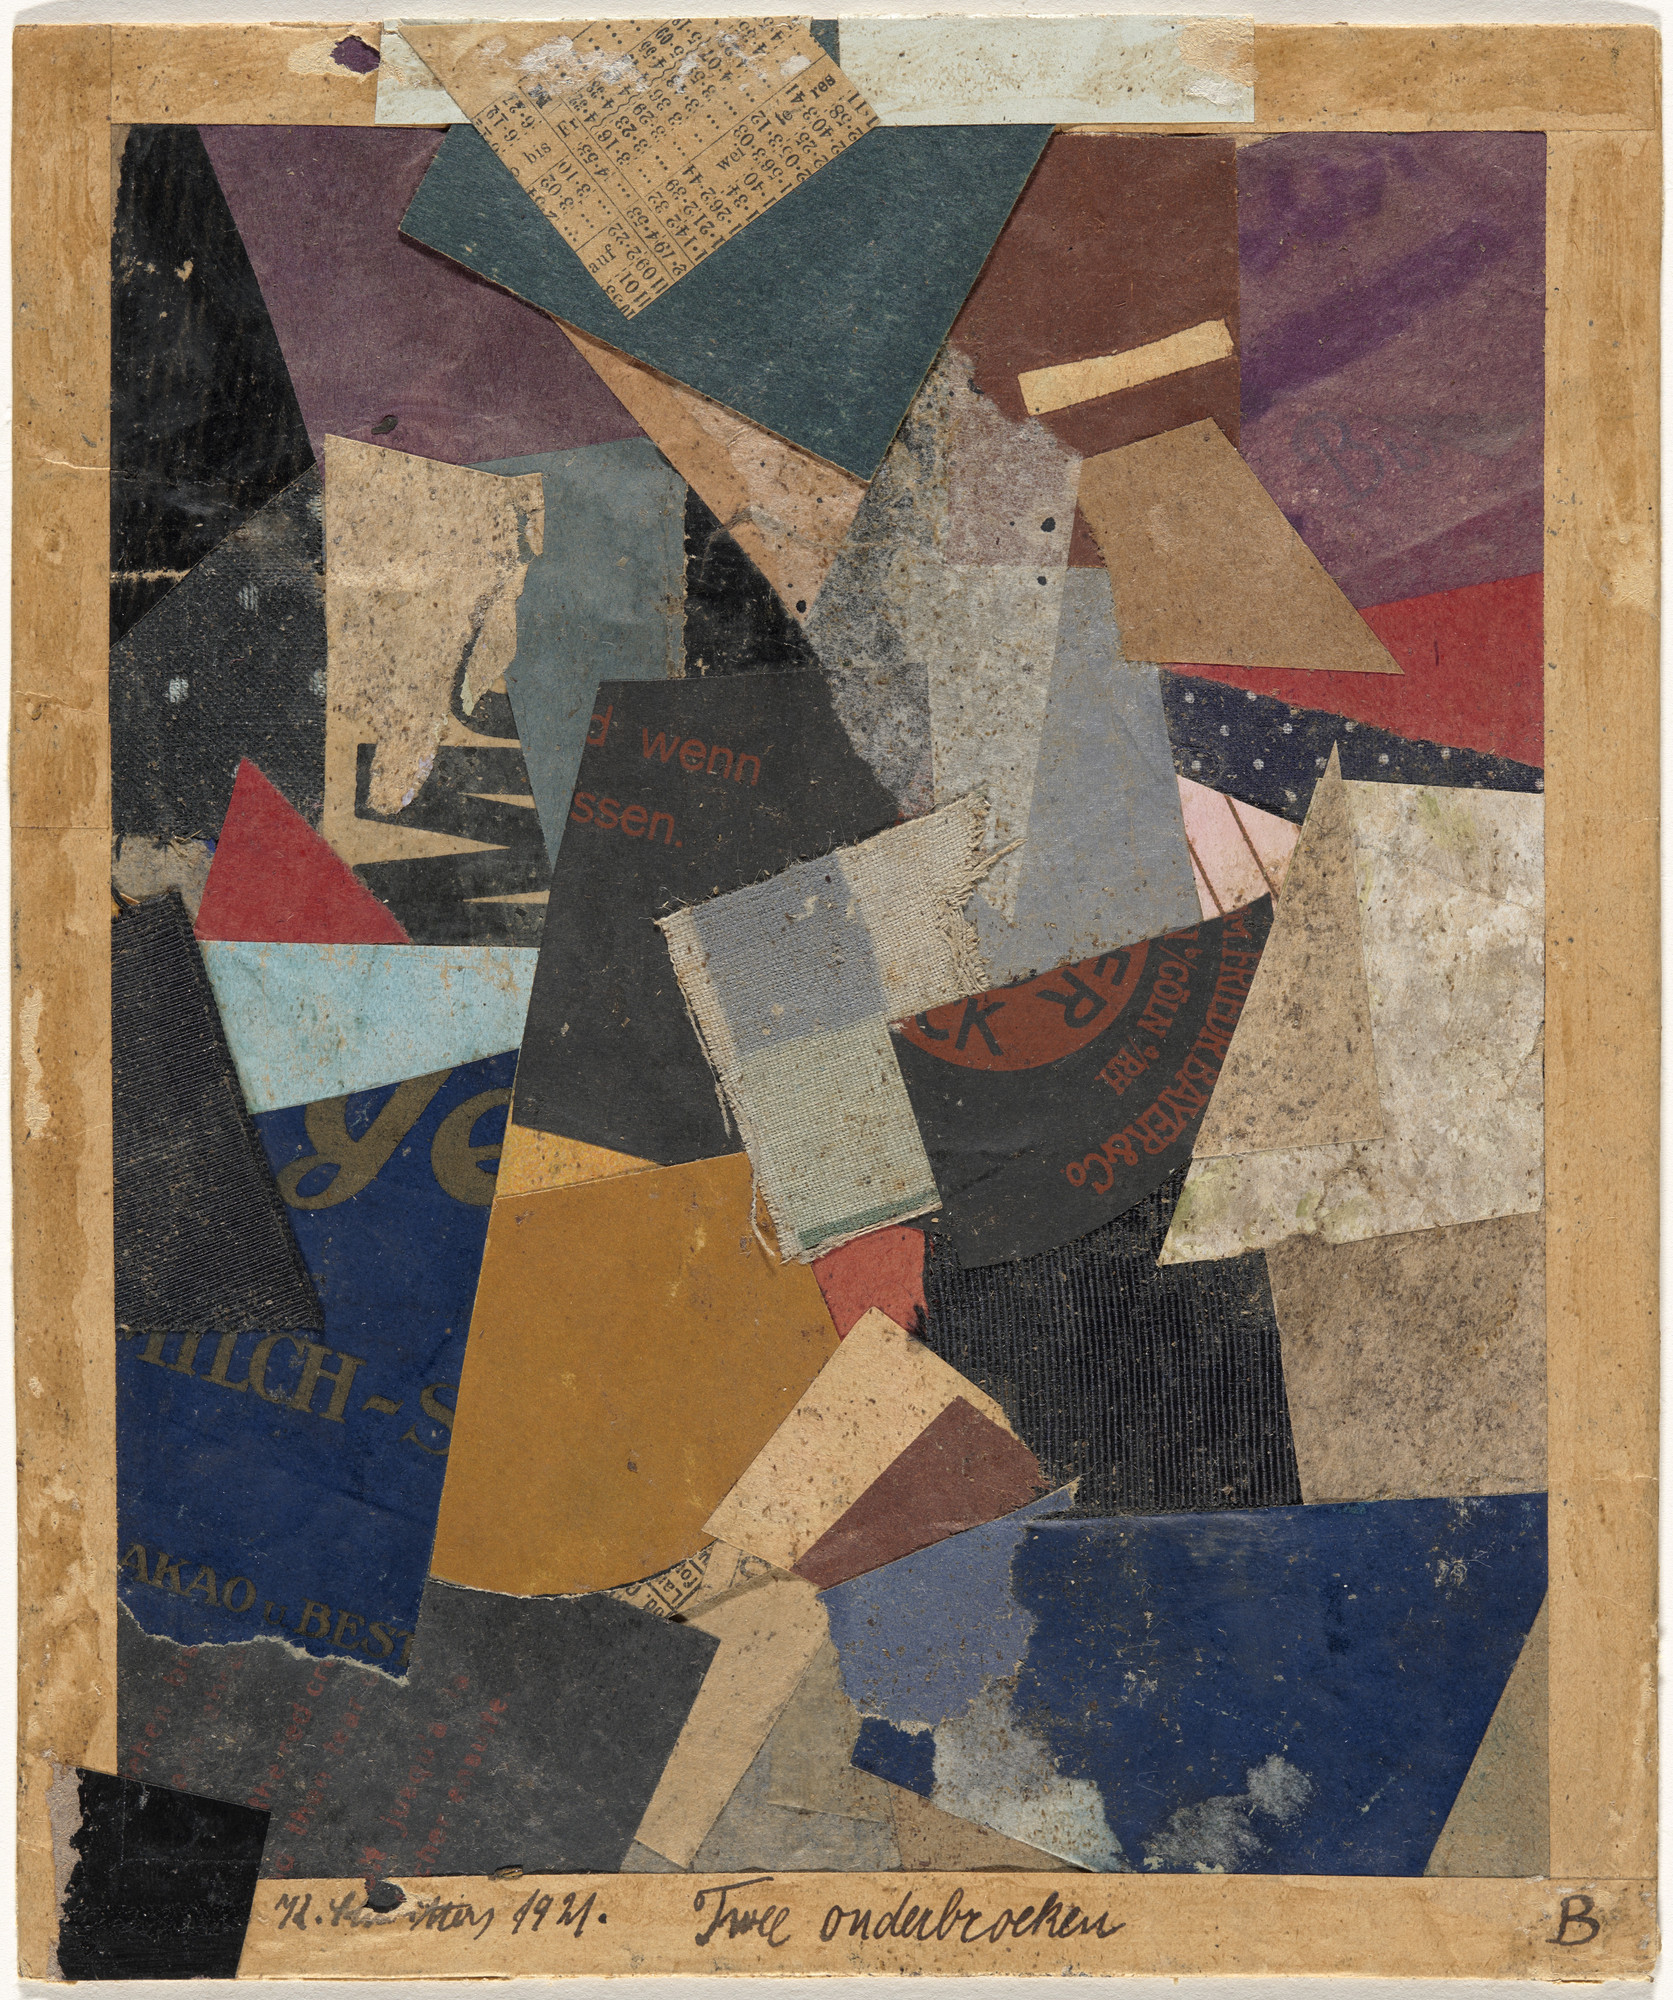 Kurt Schwitters. Merz 460. Two Underdrawers. 1921